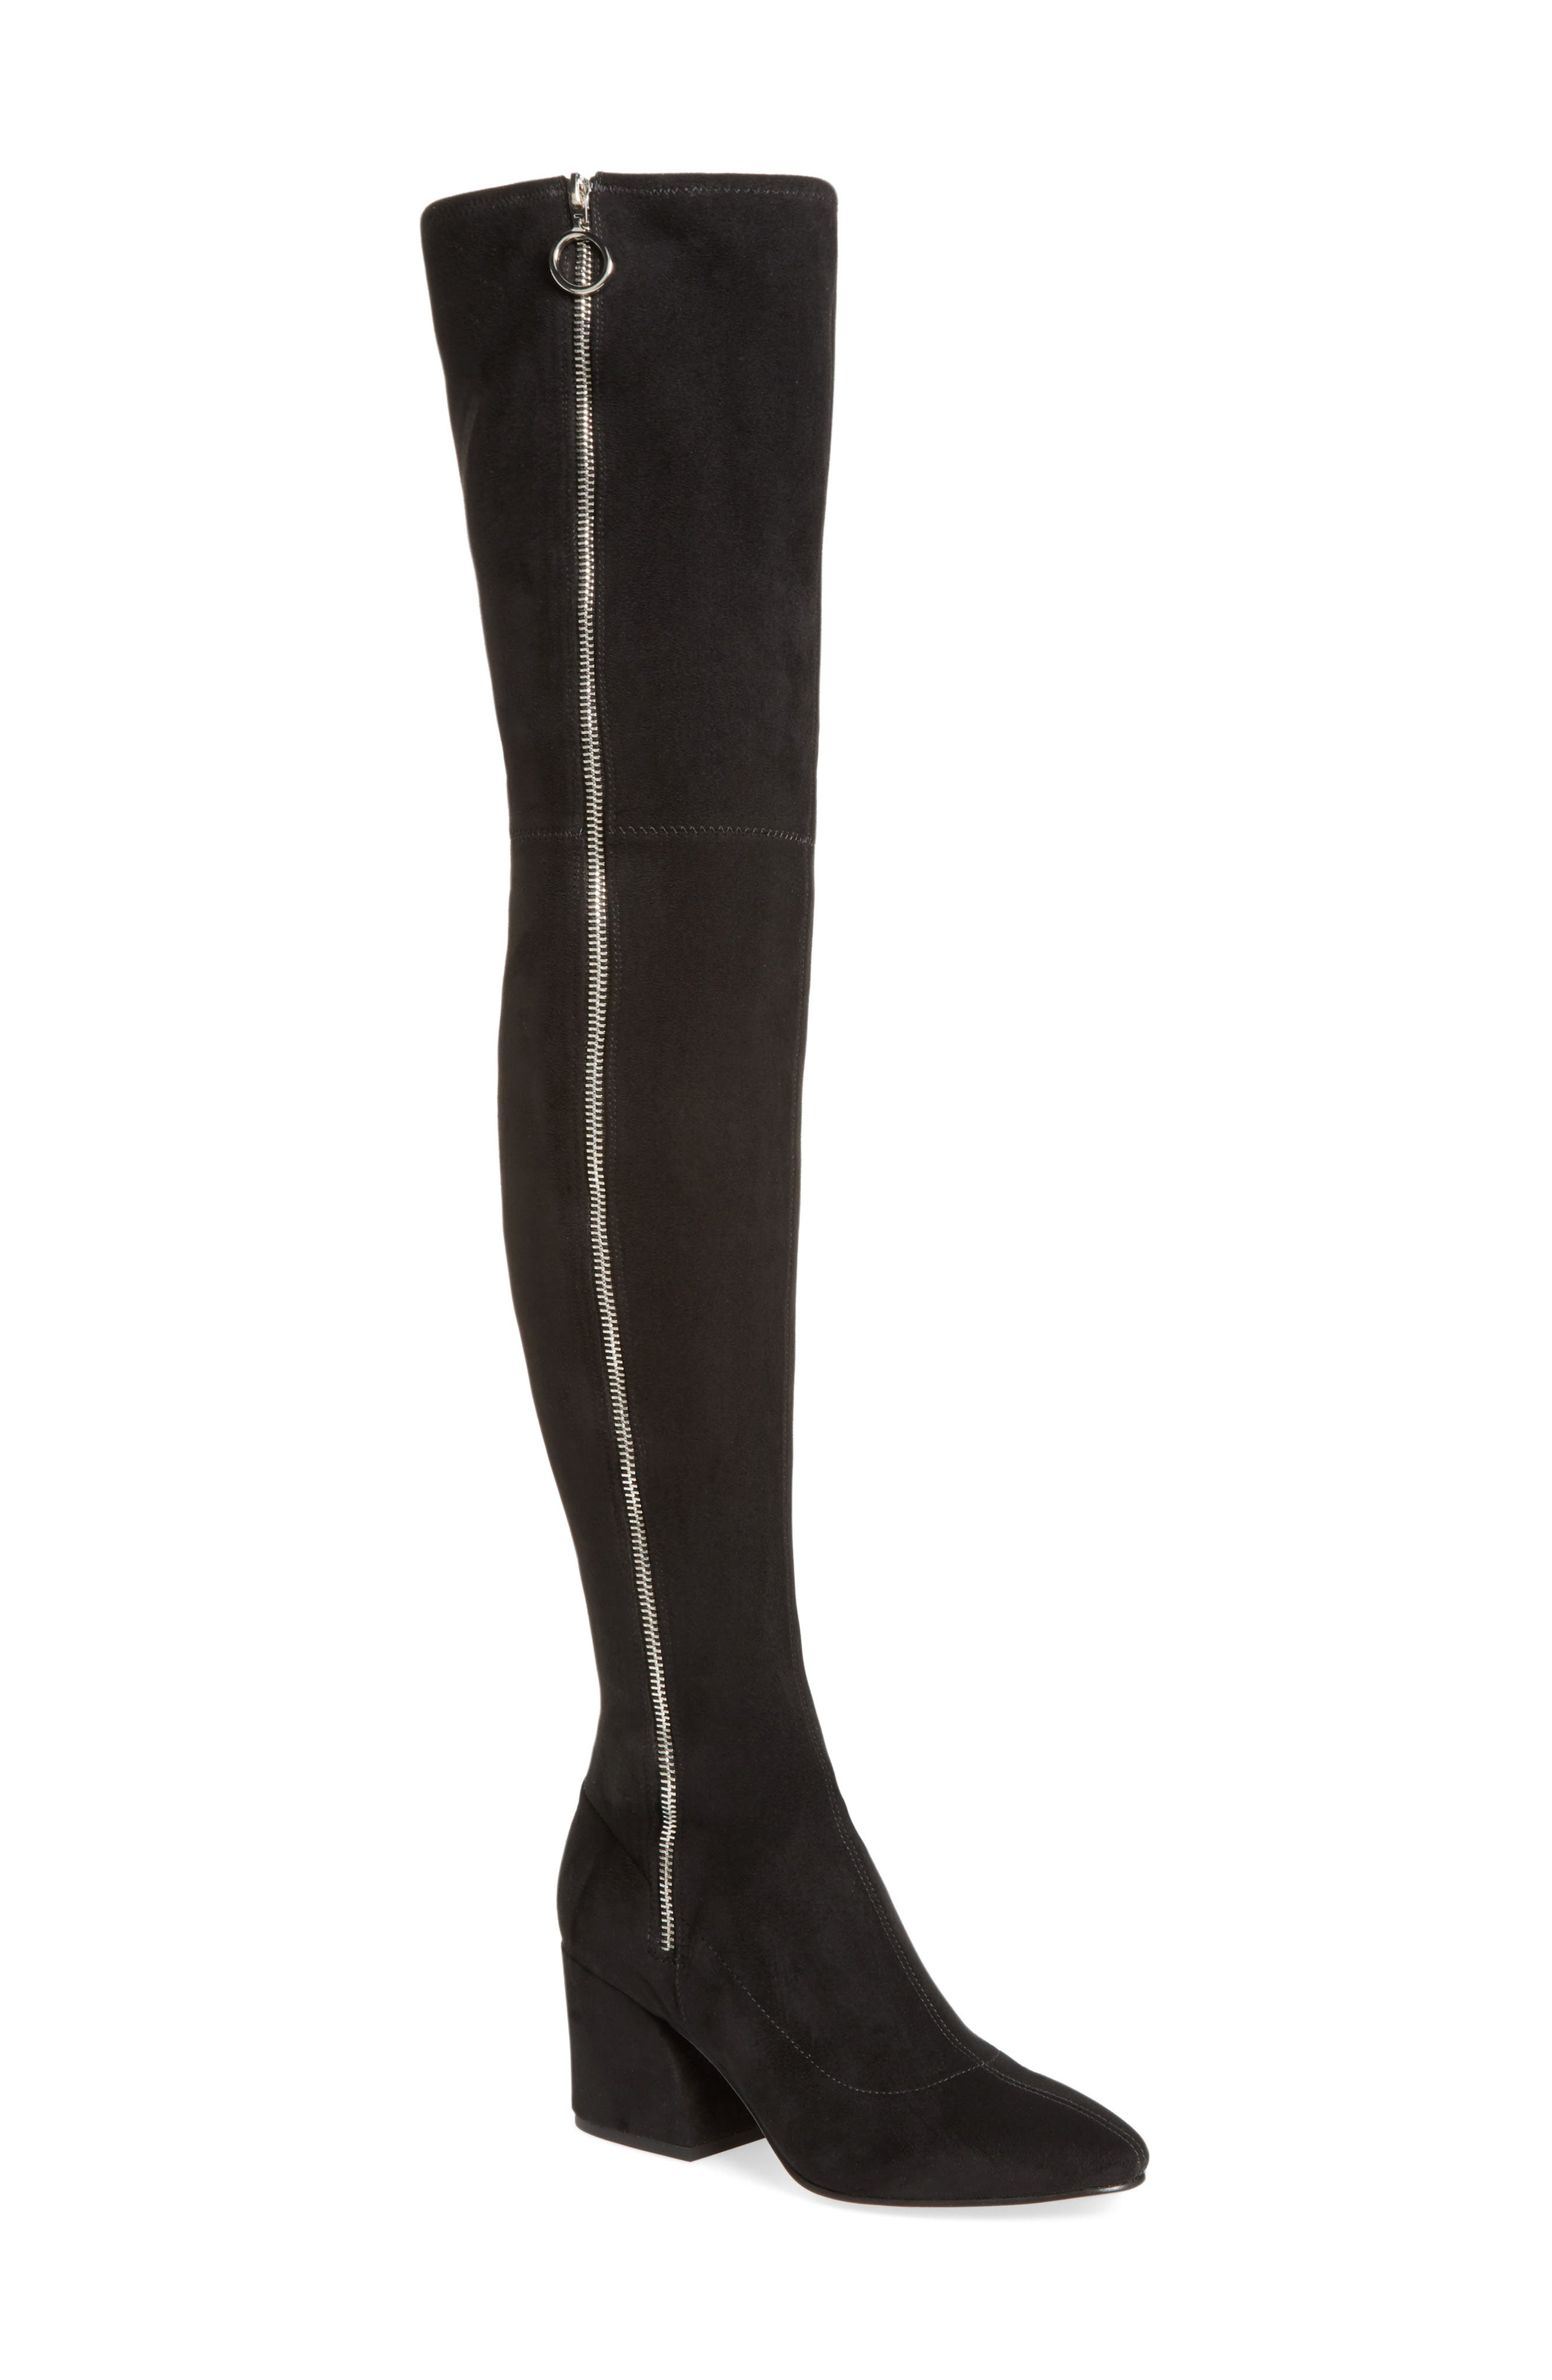 Alternate Image 1 Selected - Dolce Vita Vix Thigh High Boot (Women)